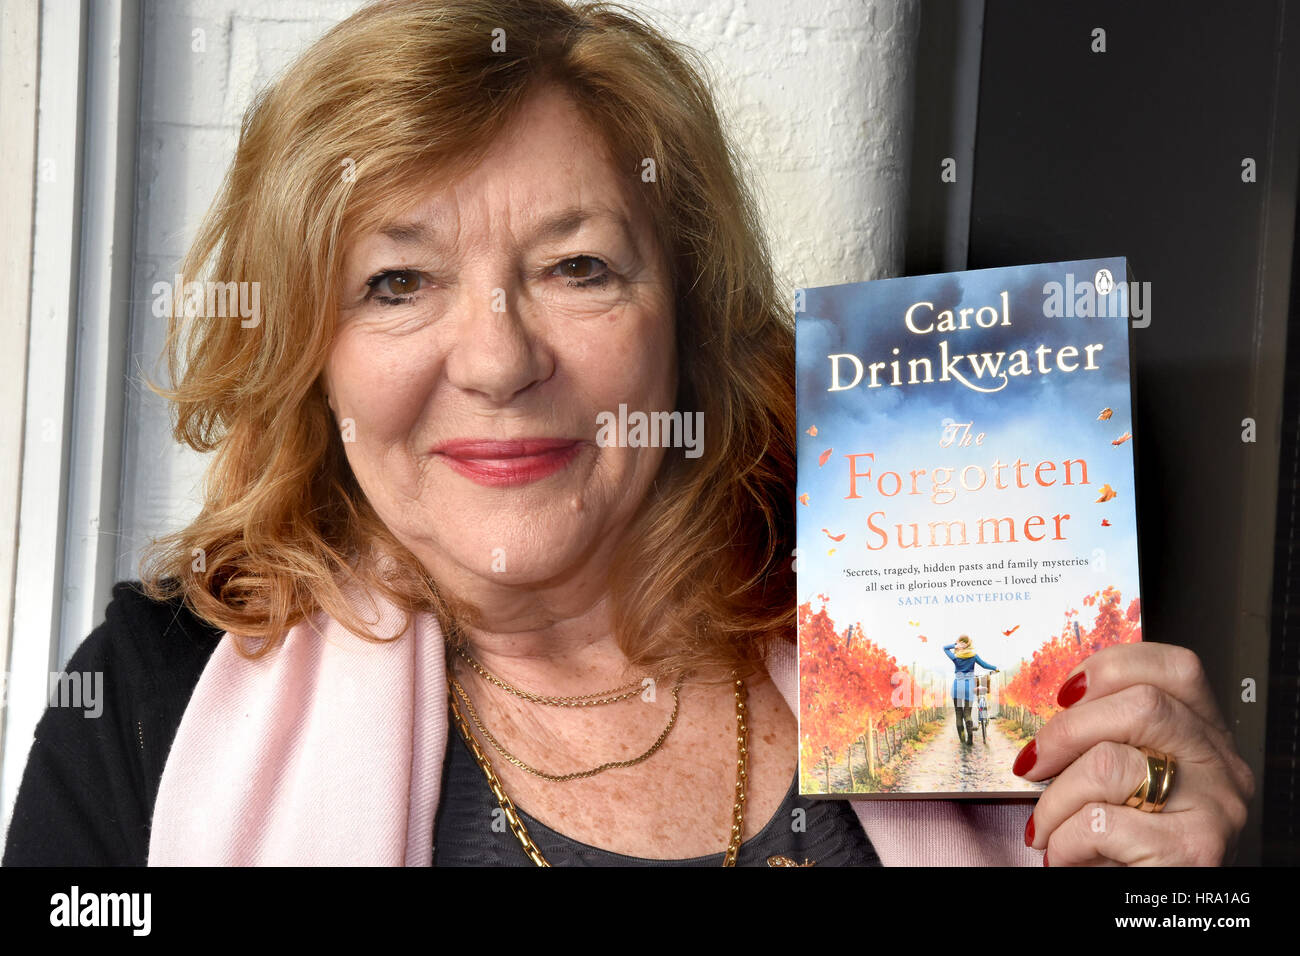 Discussion on this topic: Maylia, carol-drinkwater/